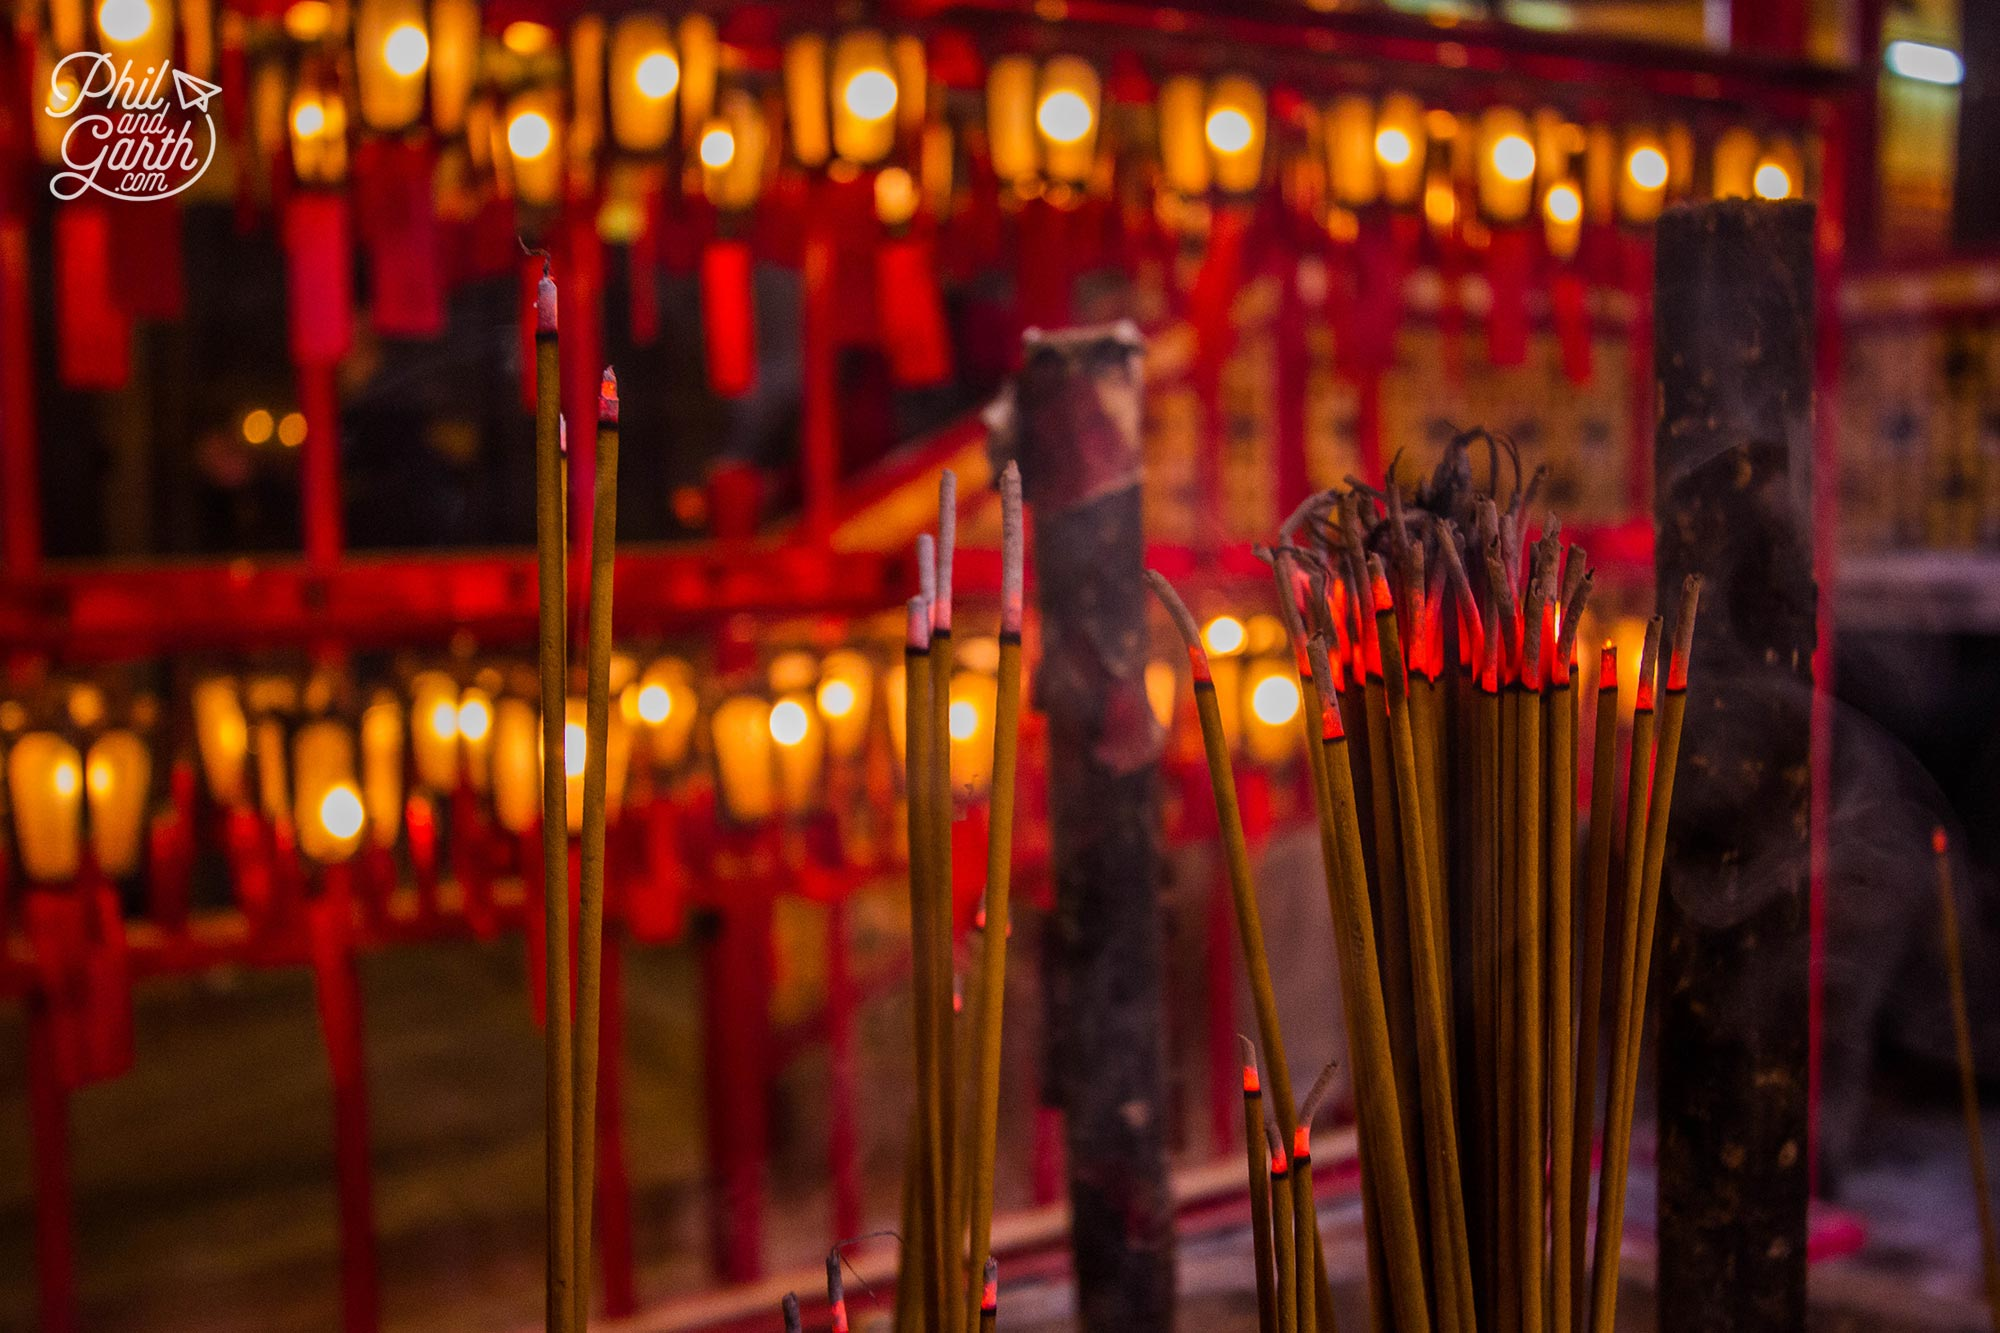 The air is quite overwhelming from all the incense sticks and coils burning